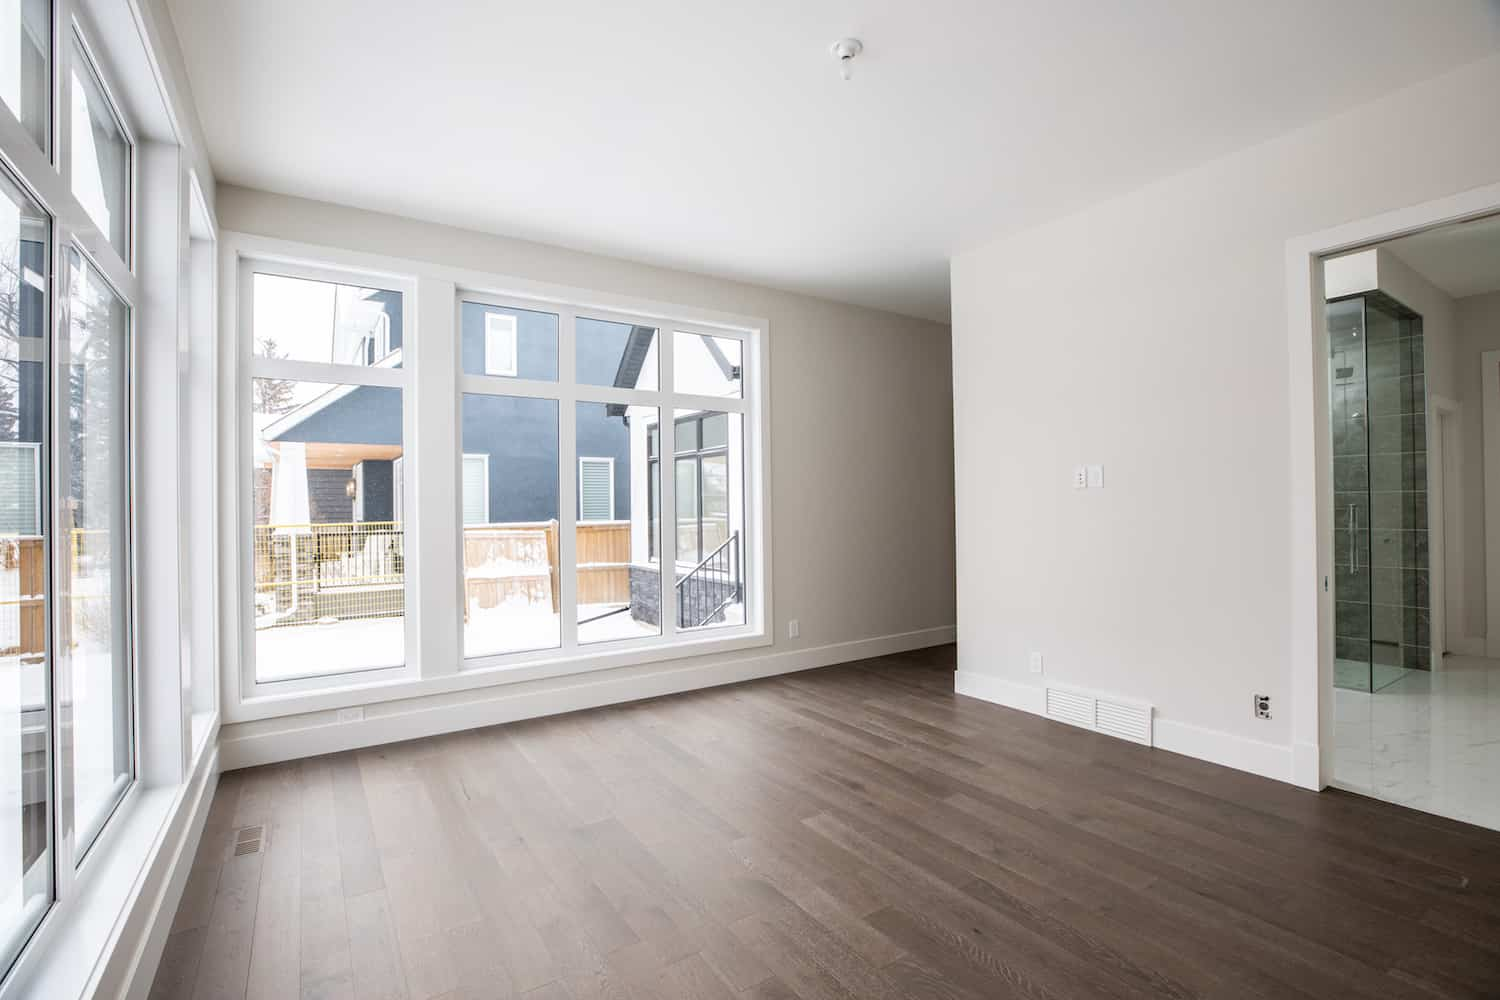 North Glenmore Park Modern Bungalow Space